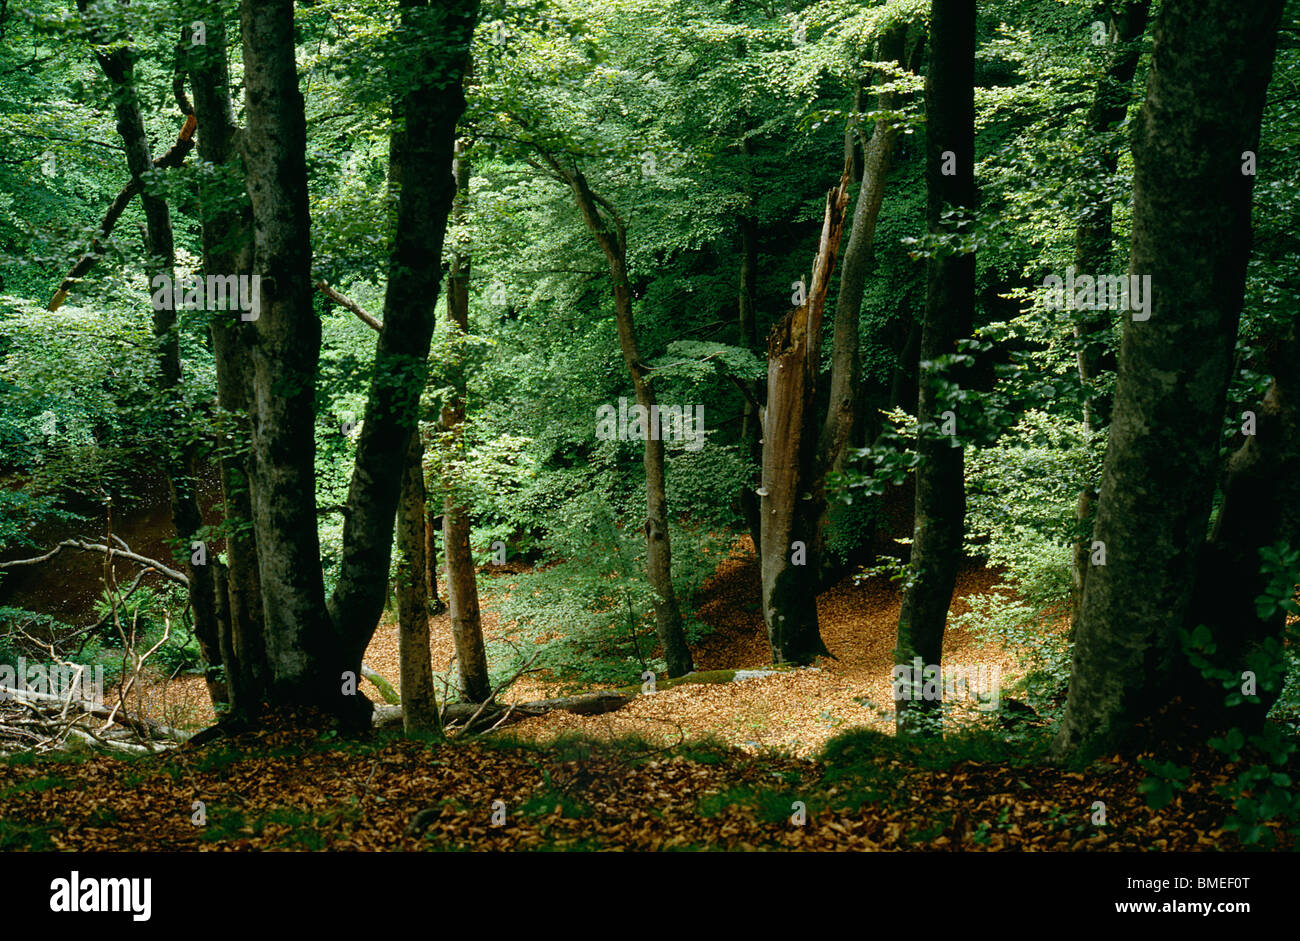 View beech trees in forest - Stock Image